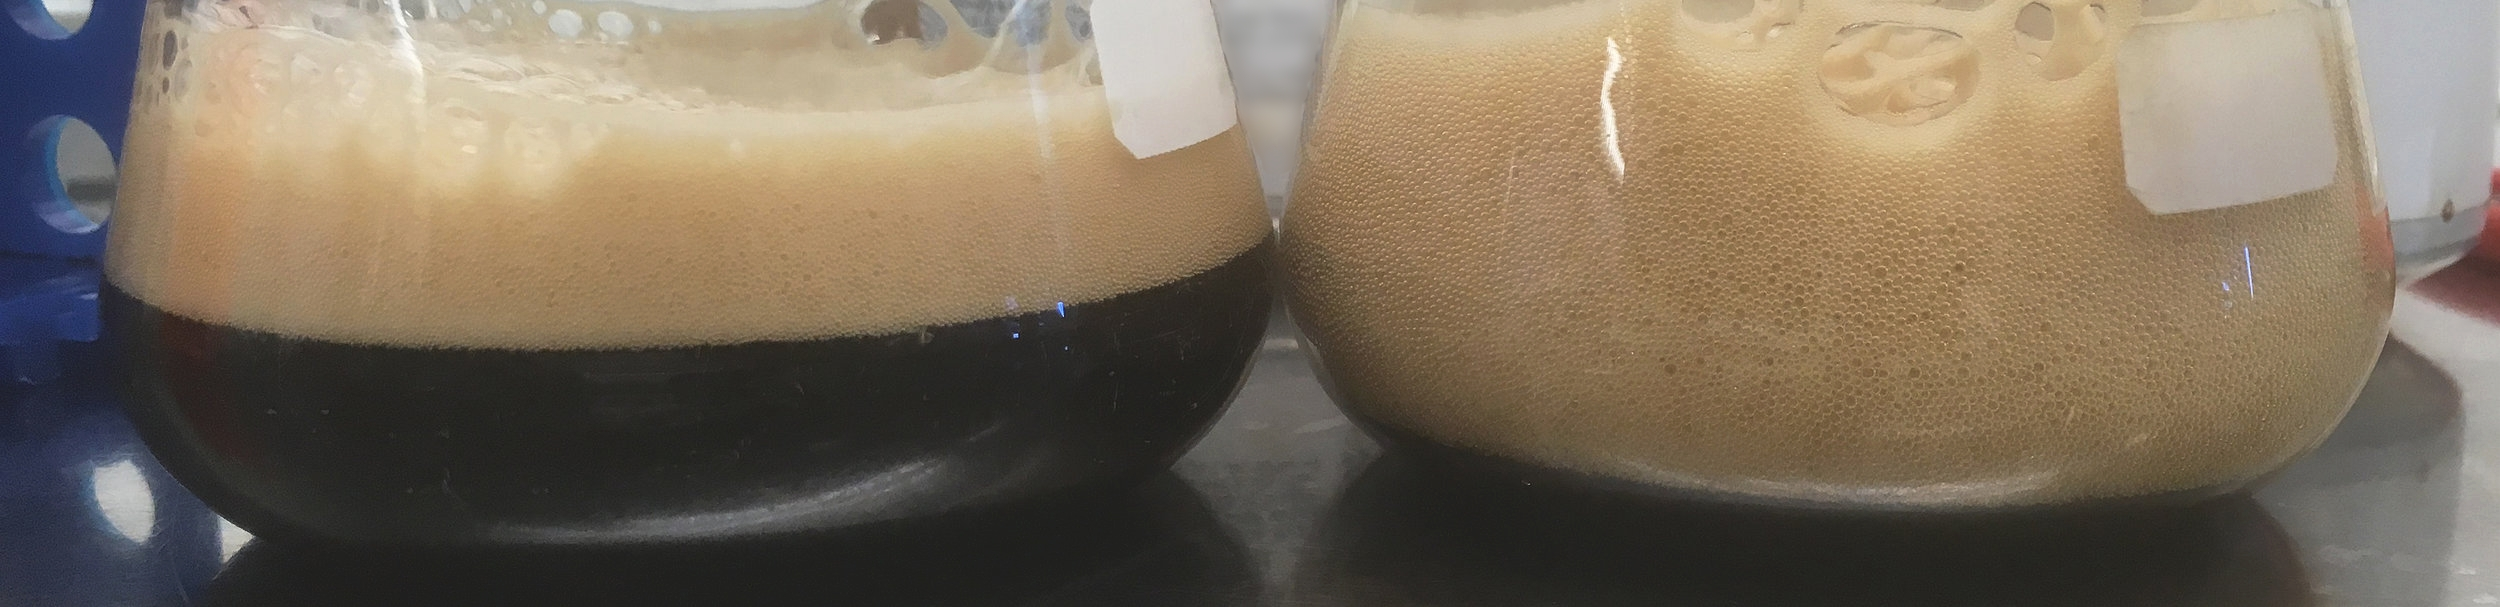 Two samples of the same beer.Sample on the left not demonstrating the symptoms of a  diastaticus  contamination, versus the one on the right which most definitely is. Both packaged and stored identically, and opened a minute apart.